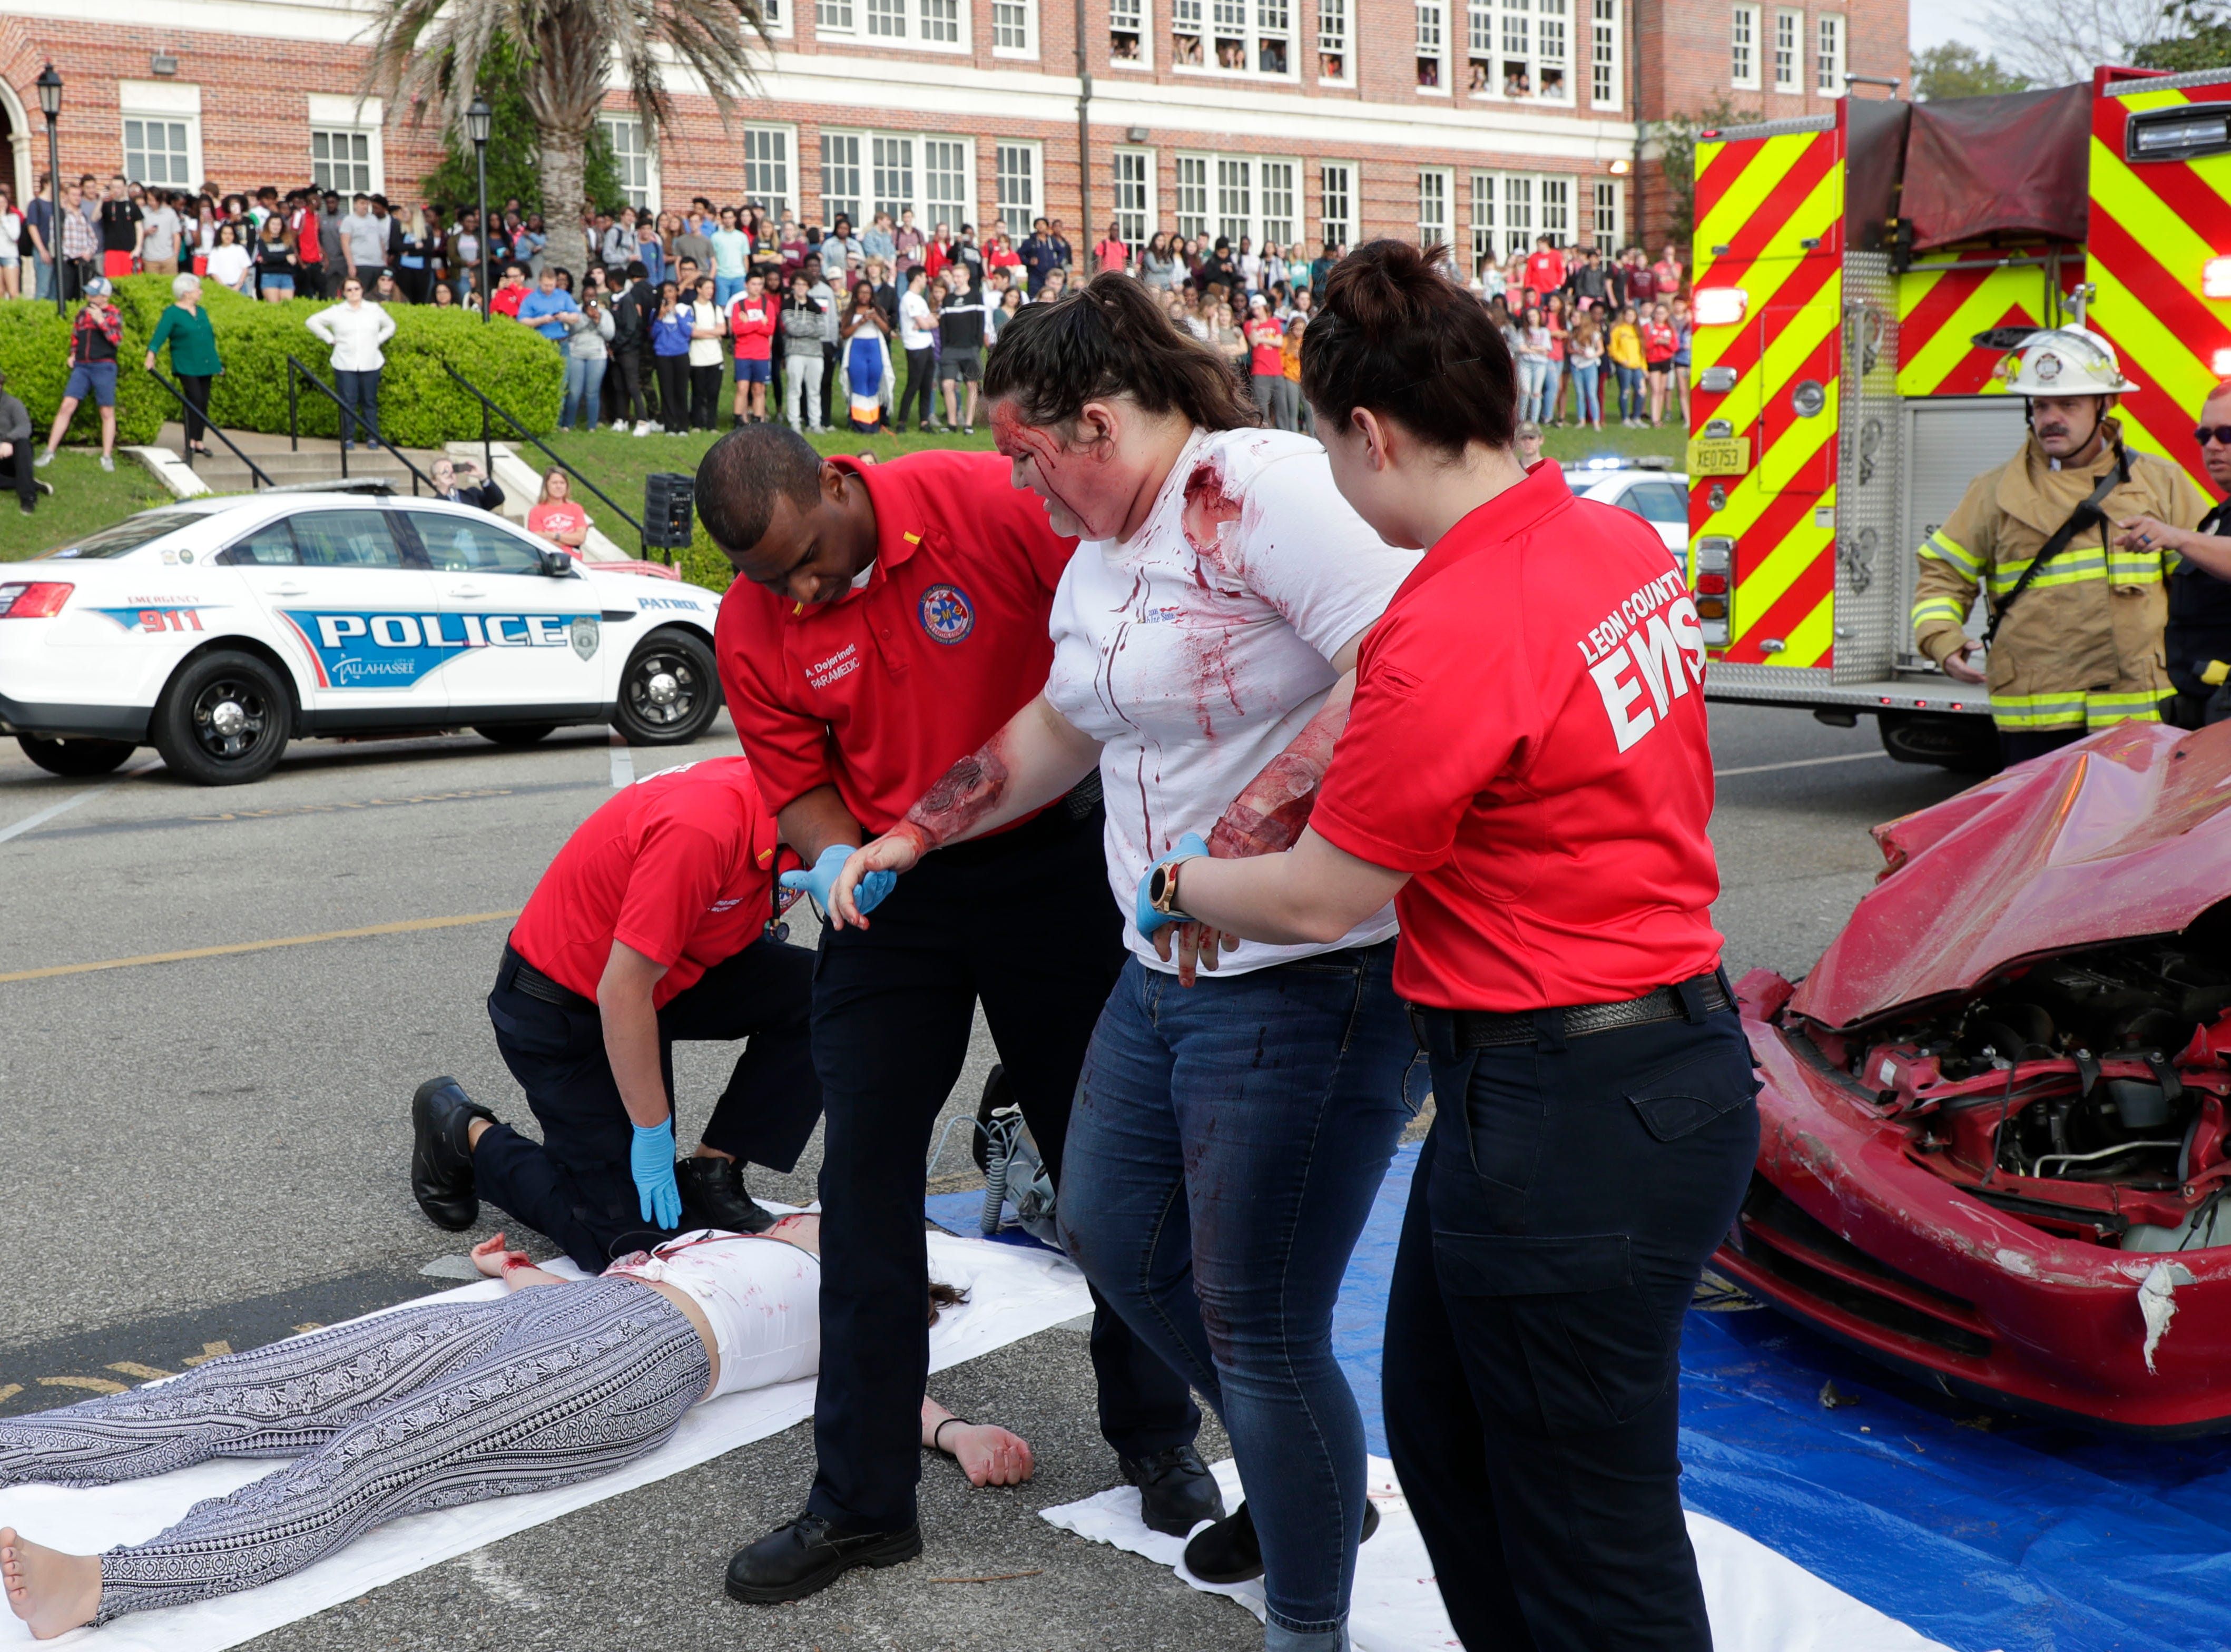 Caitlyn Burke is taken to an ambulance by Leon County EMS paramedics. Leon High School partners with the county safety officials to give a simulation on the consequences of drunk driving before the students leave for spring break Friday, March 15, 2019.